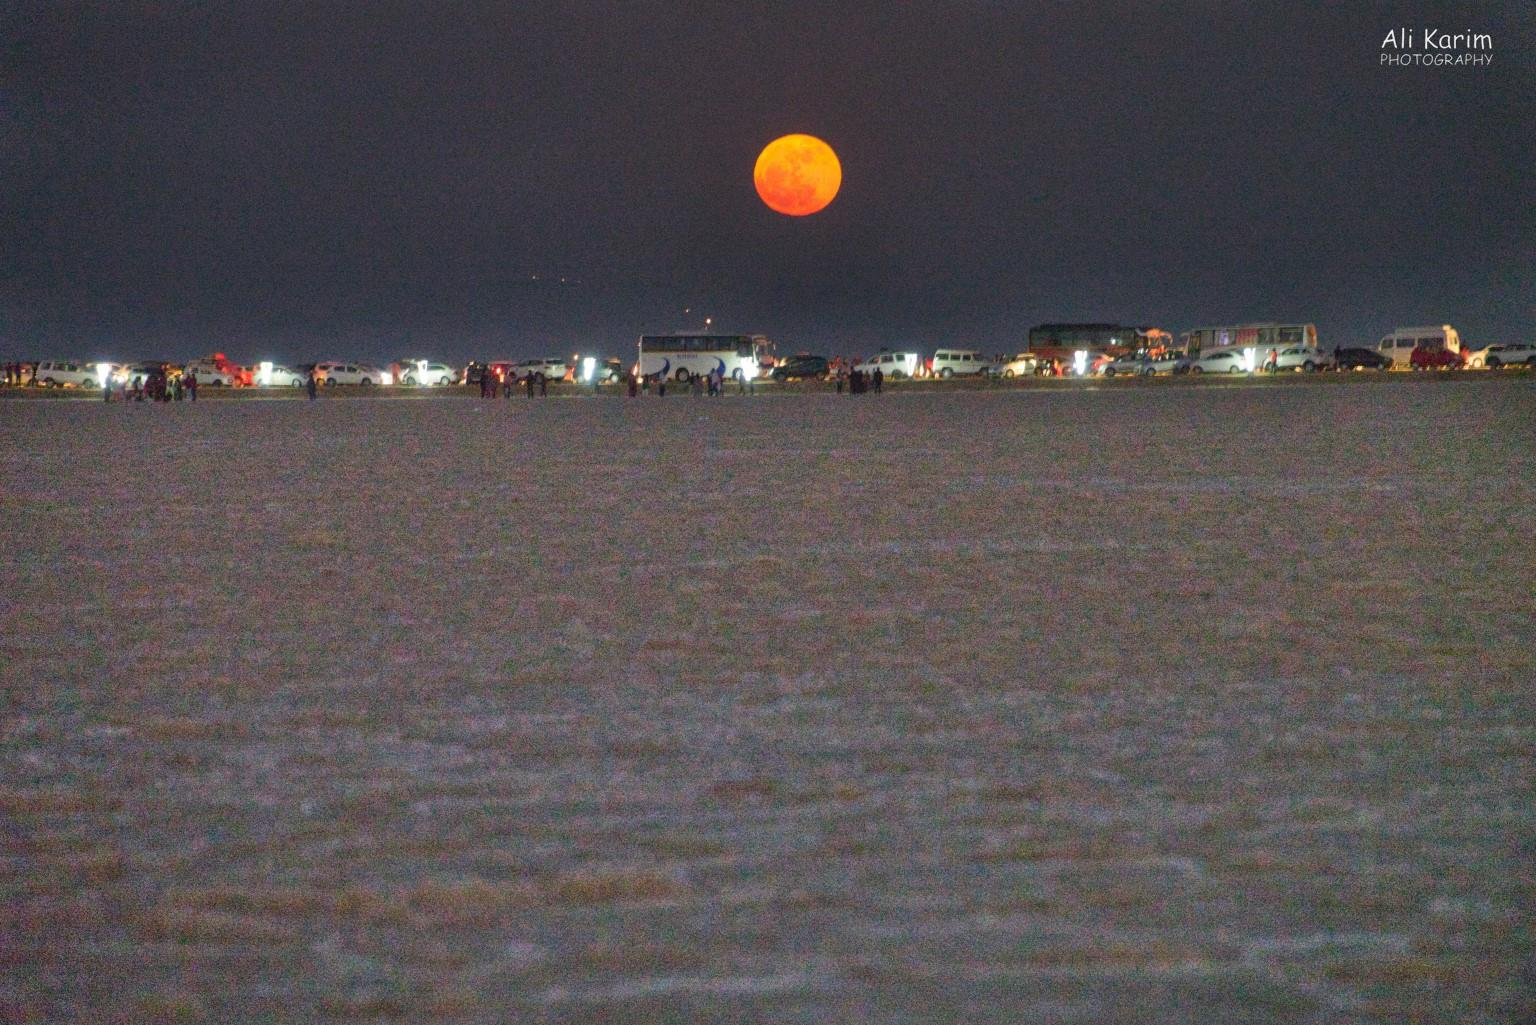 Bhuj, Kutch, Gujarat followed by an equally beautiful moonrise over the Raan, shortly after the sunset. Timing was perfect. Note all the busy tourist transportation